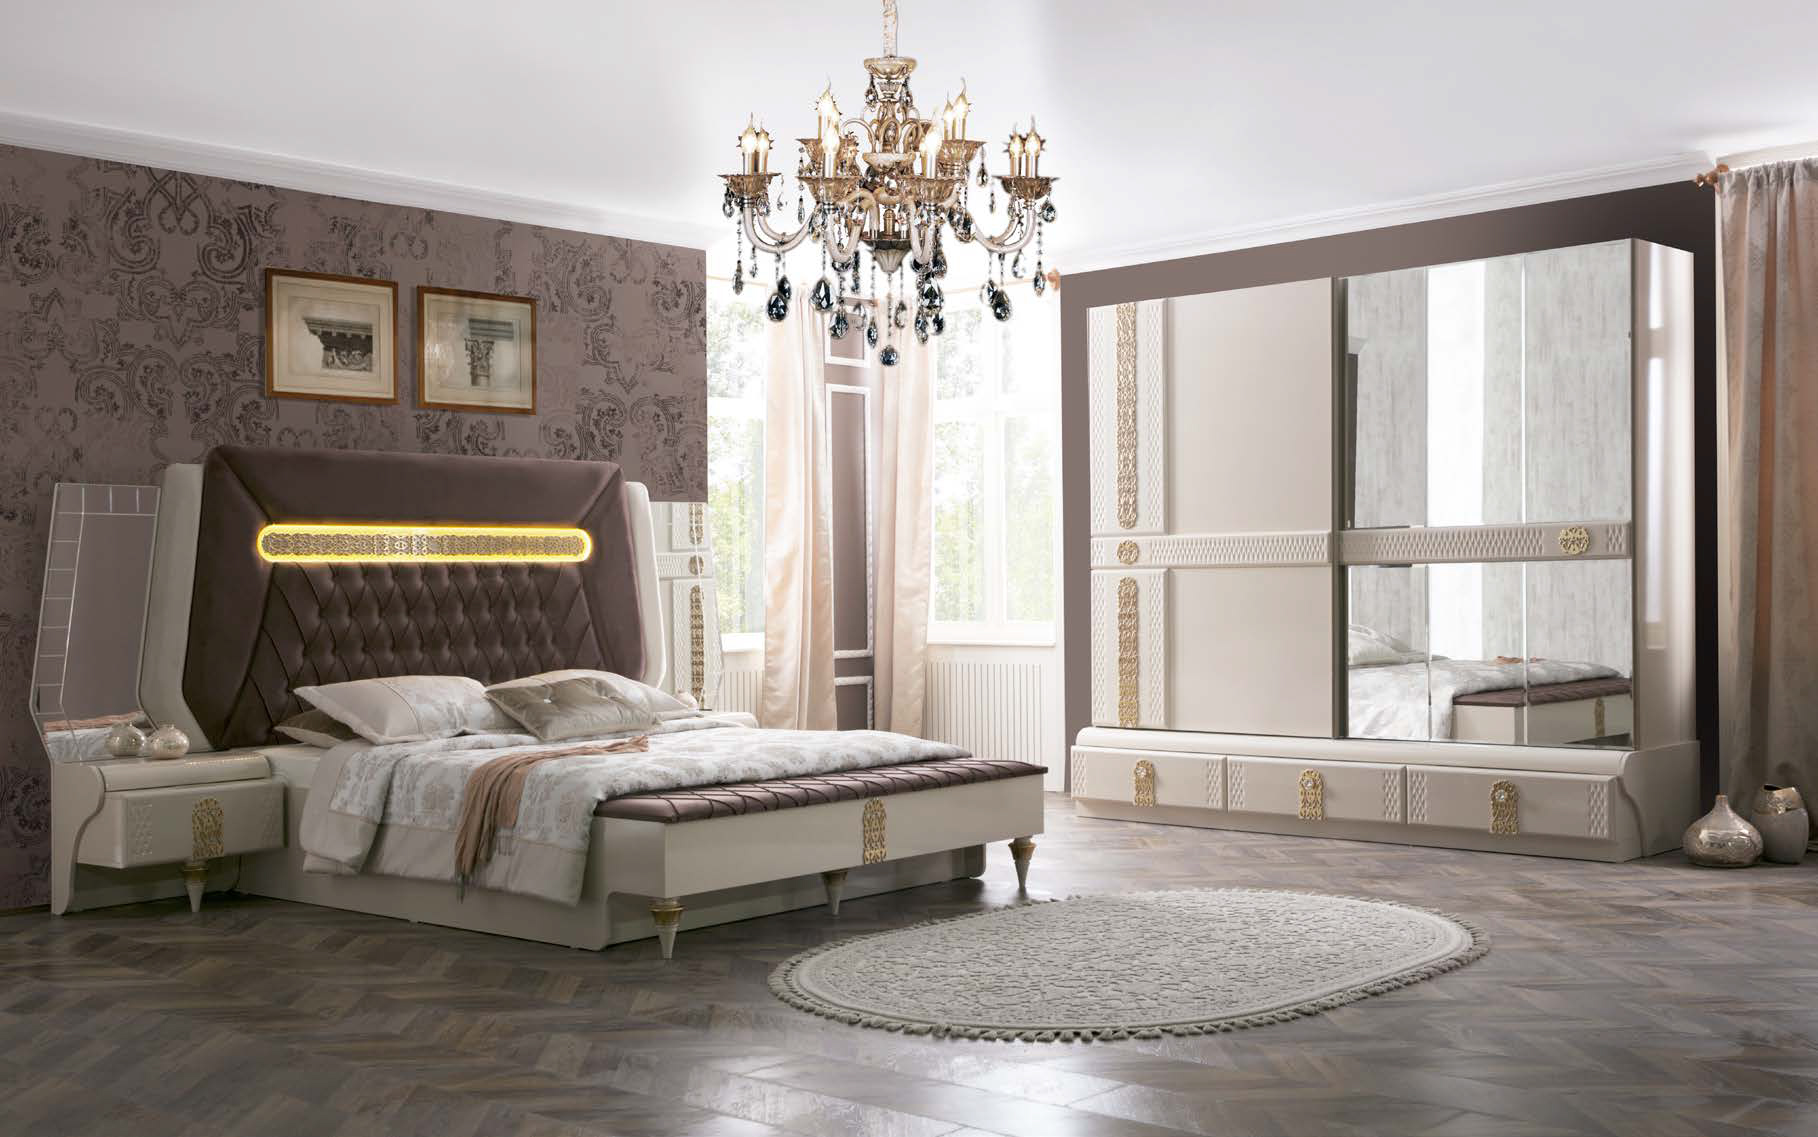 class schlafzimmer yuvam m belhaus in wuppertal cilek. Black Bedroom Furniture Sets. Home Design Ideas